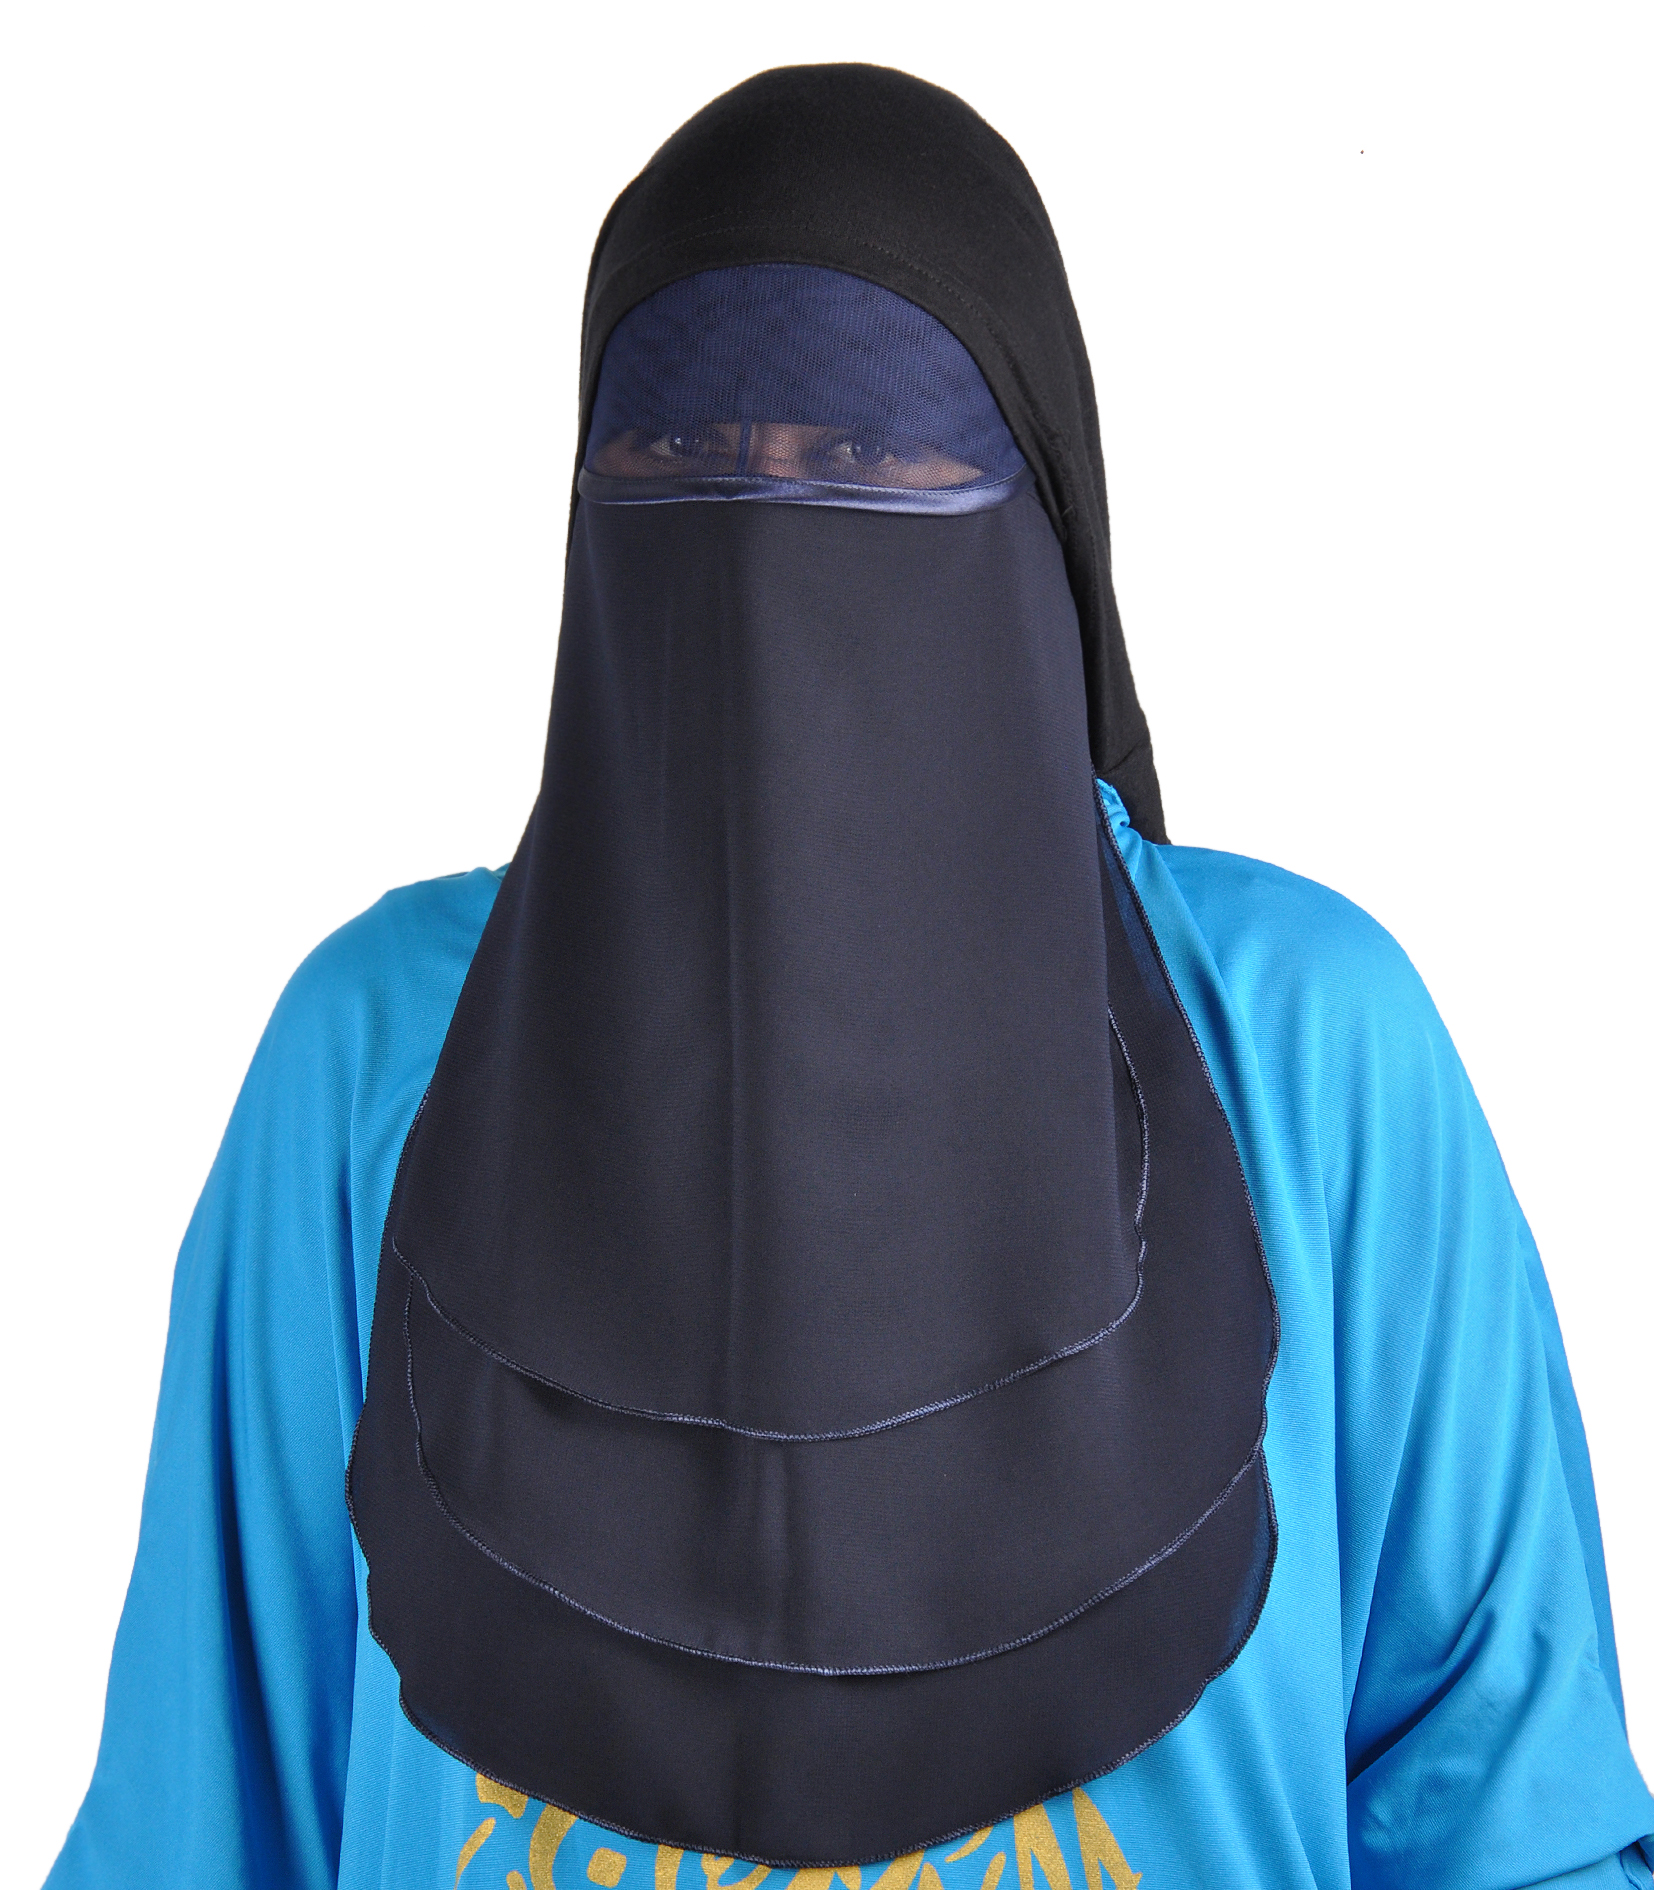 niqab gesichtsschleier nachtblau hijab online kaufen egypt bazar shop. Black Bedroom Furniture Sets. Home Design Ideas